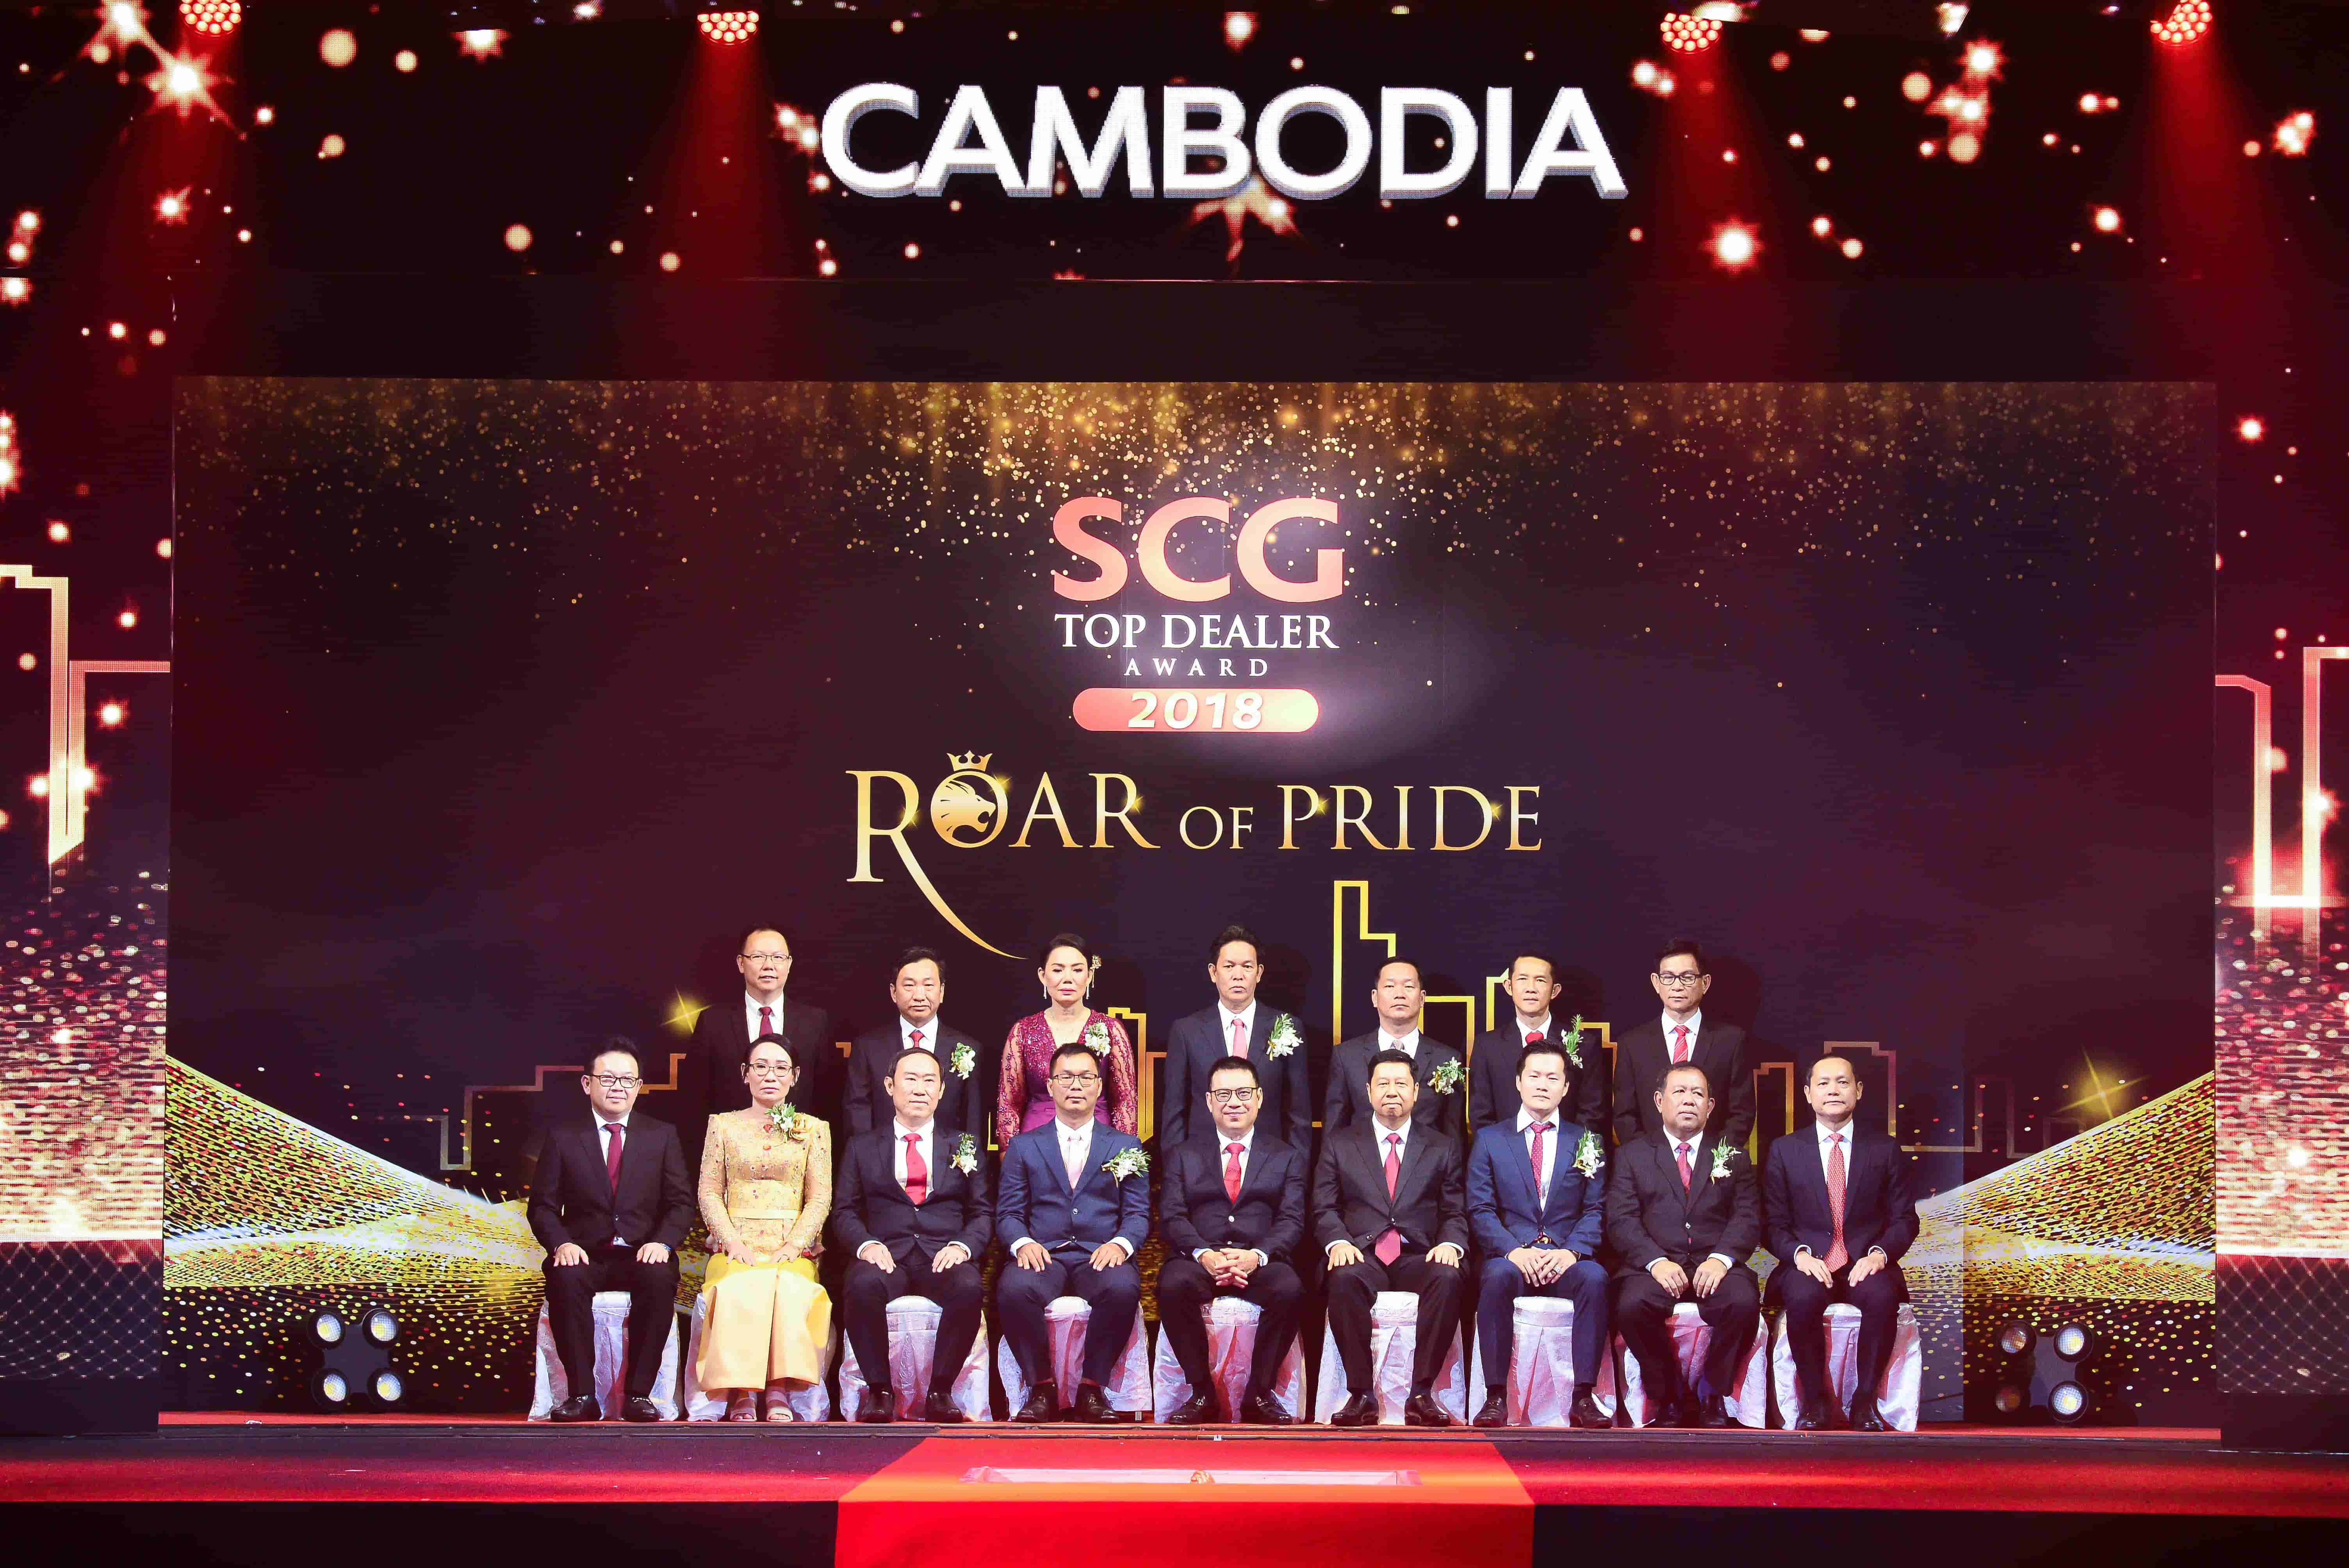 SCG Top Dealer in Cambodia